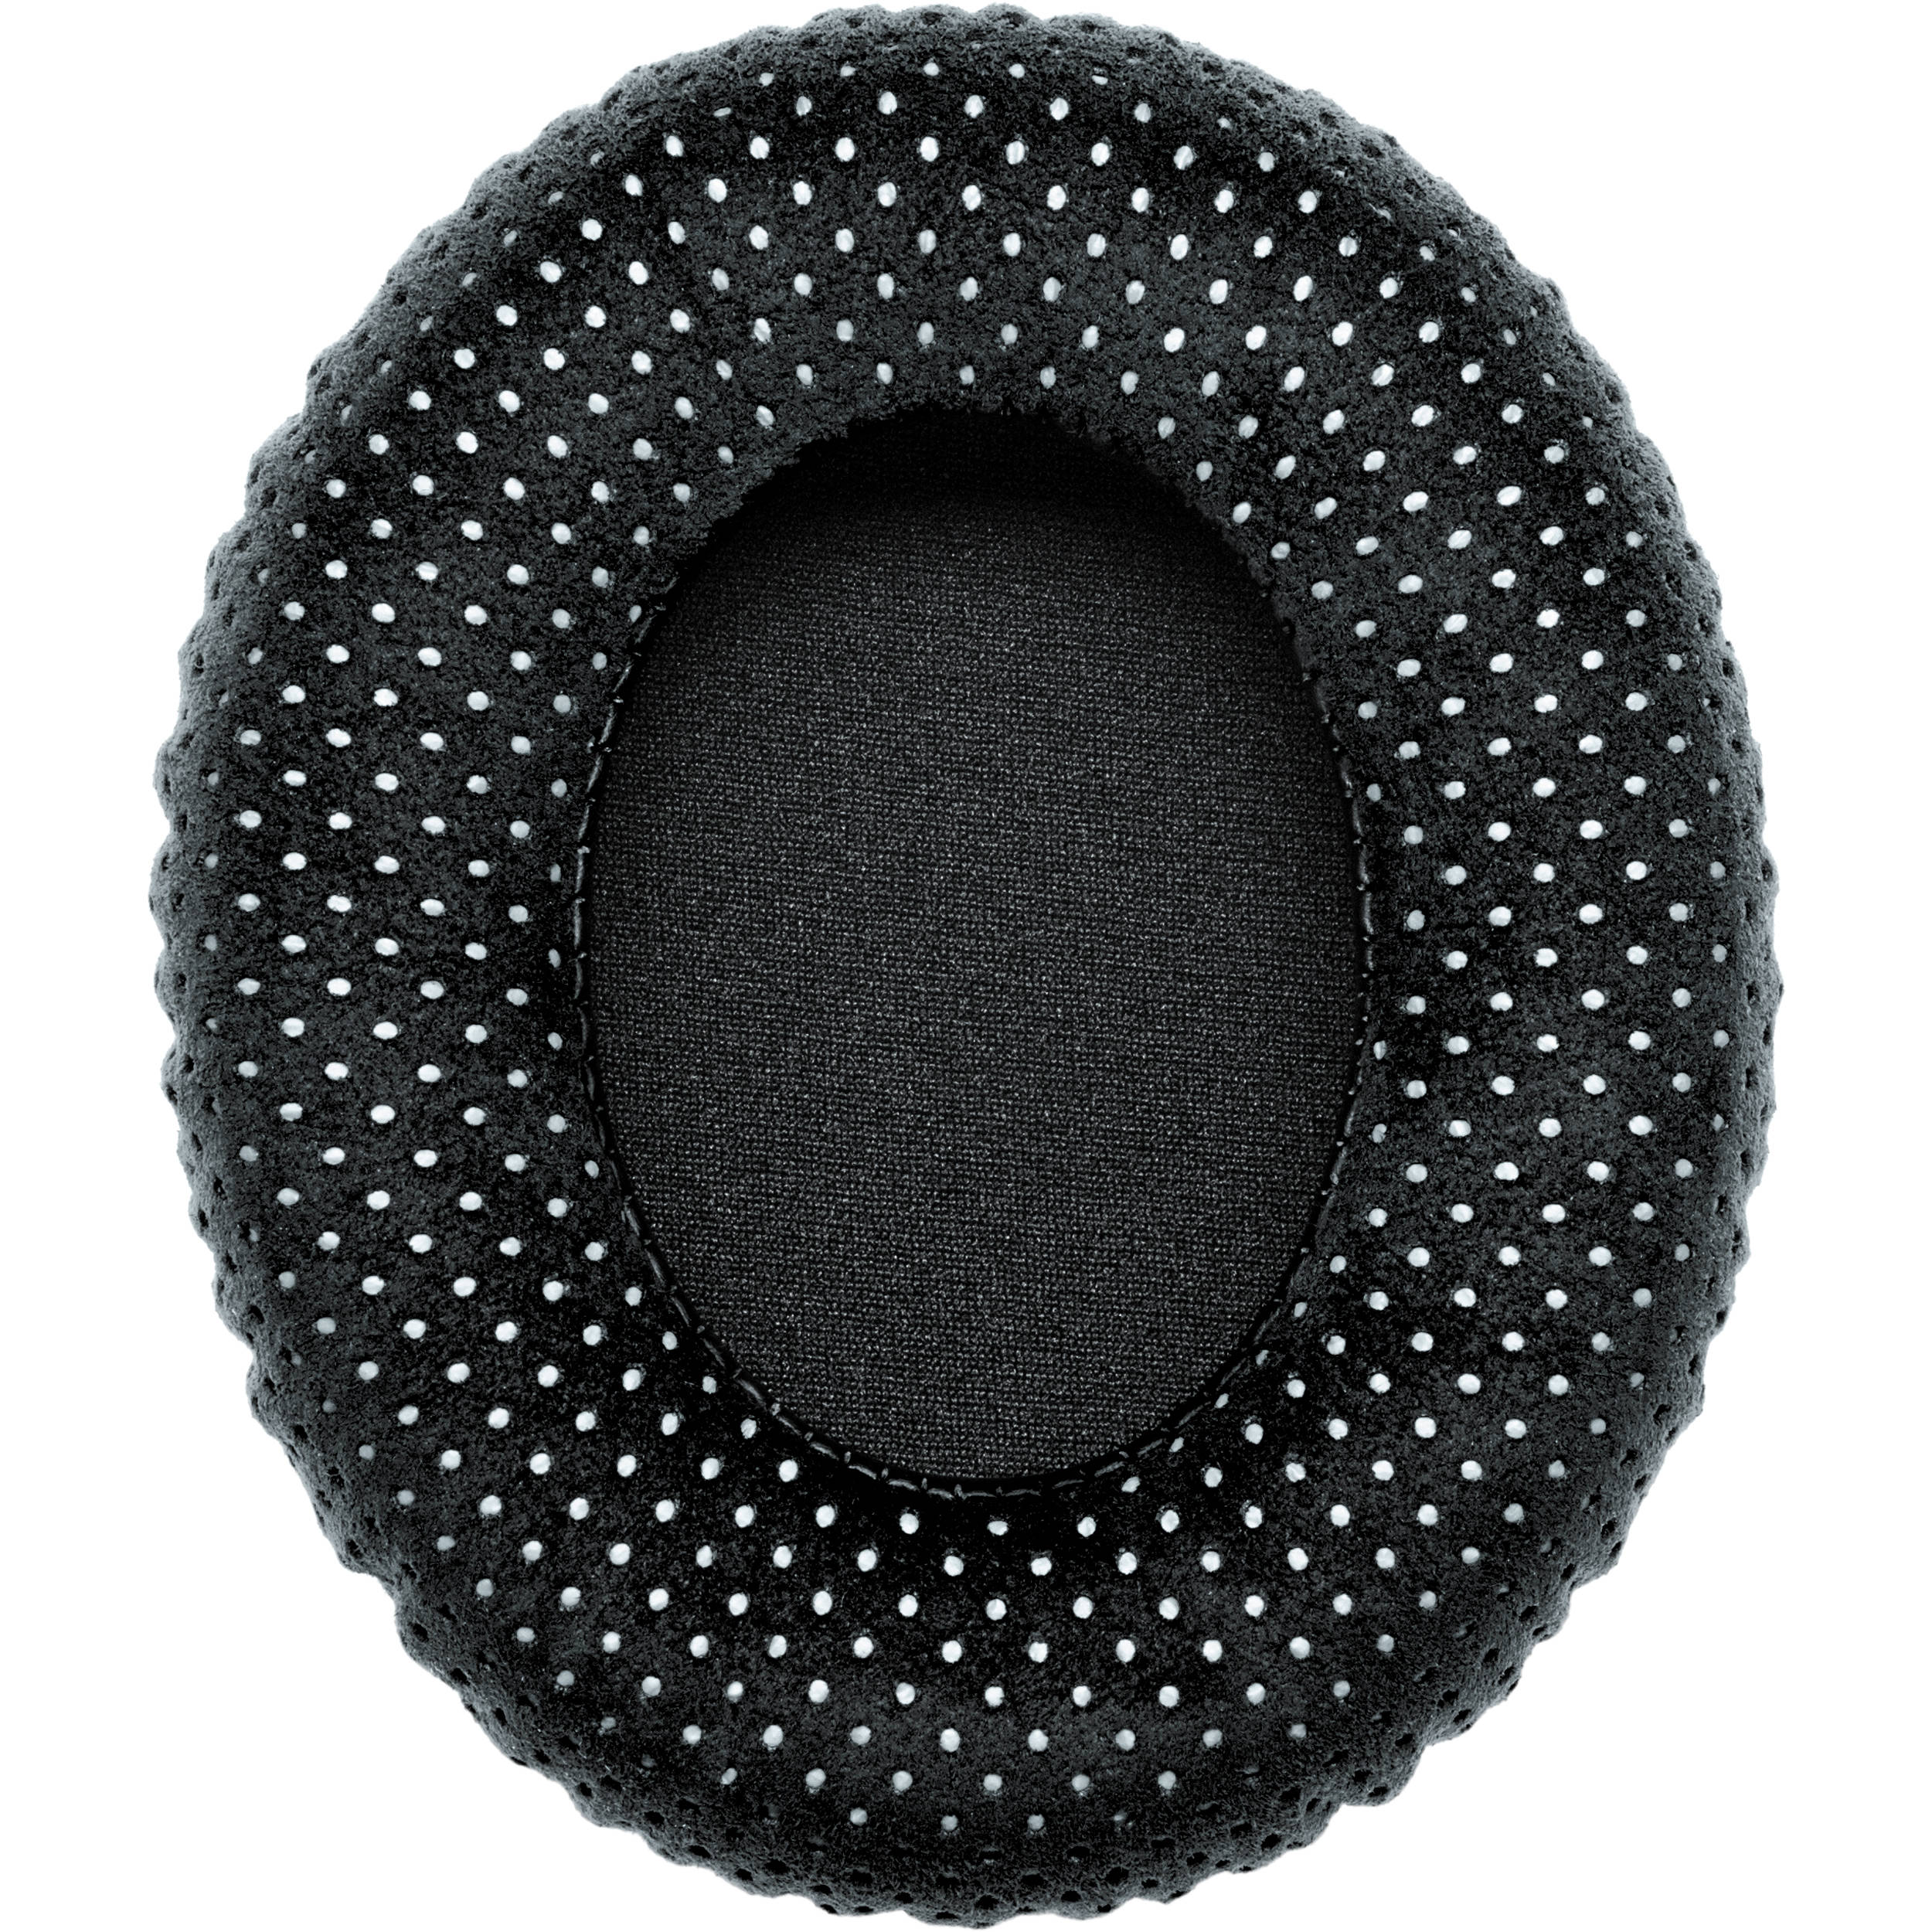 Omtalade Shure Alcantara Replacement Ear Pads for the SRH1540 HPAEC1540 FU-79